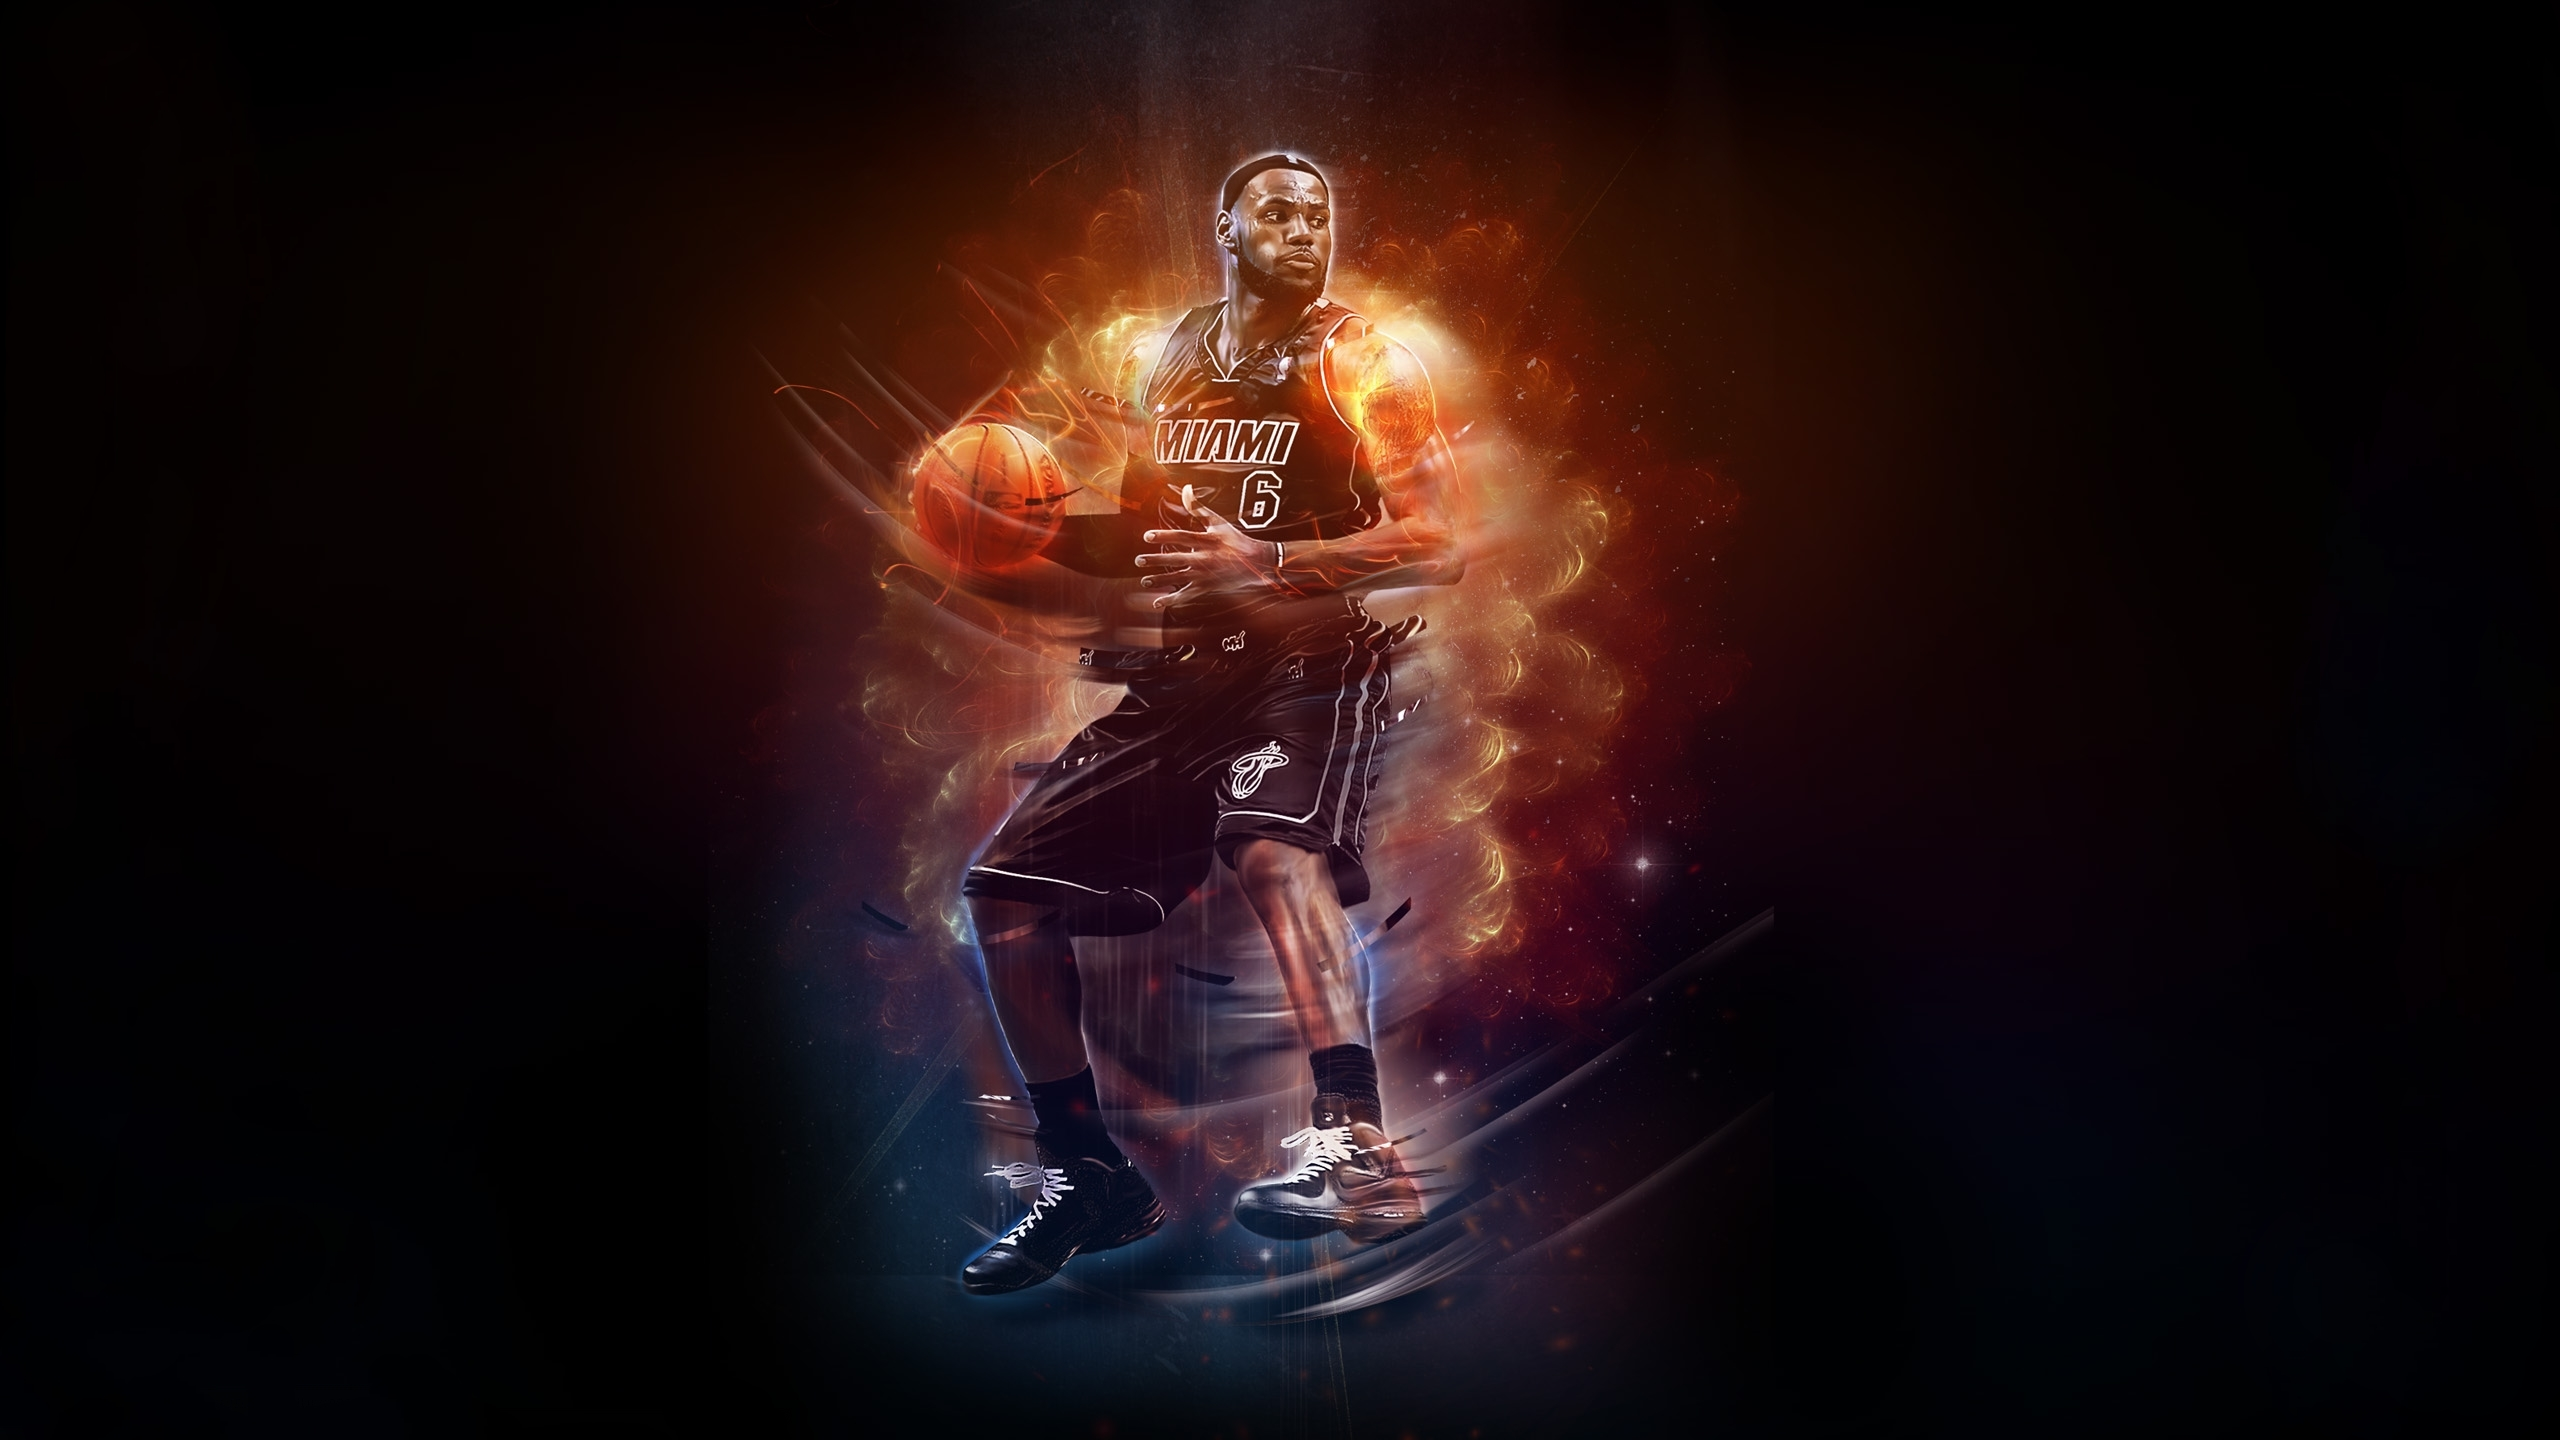 lebron james nba basketball miami heat wallpaper